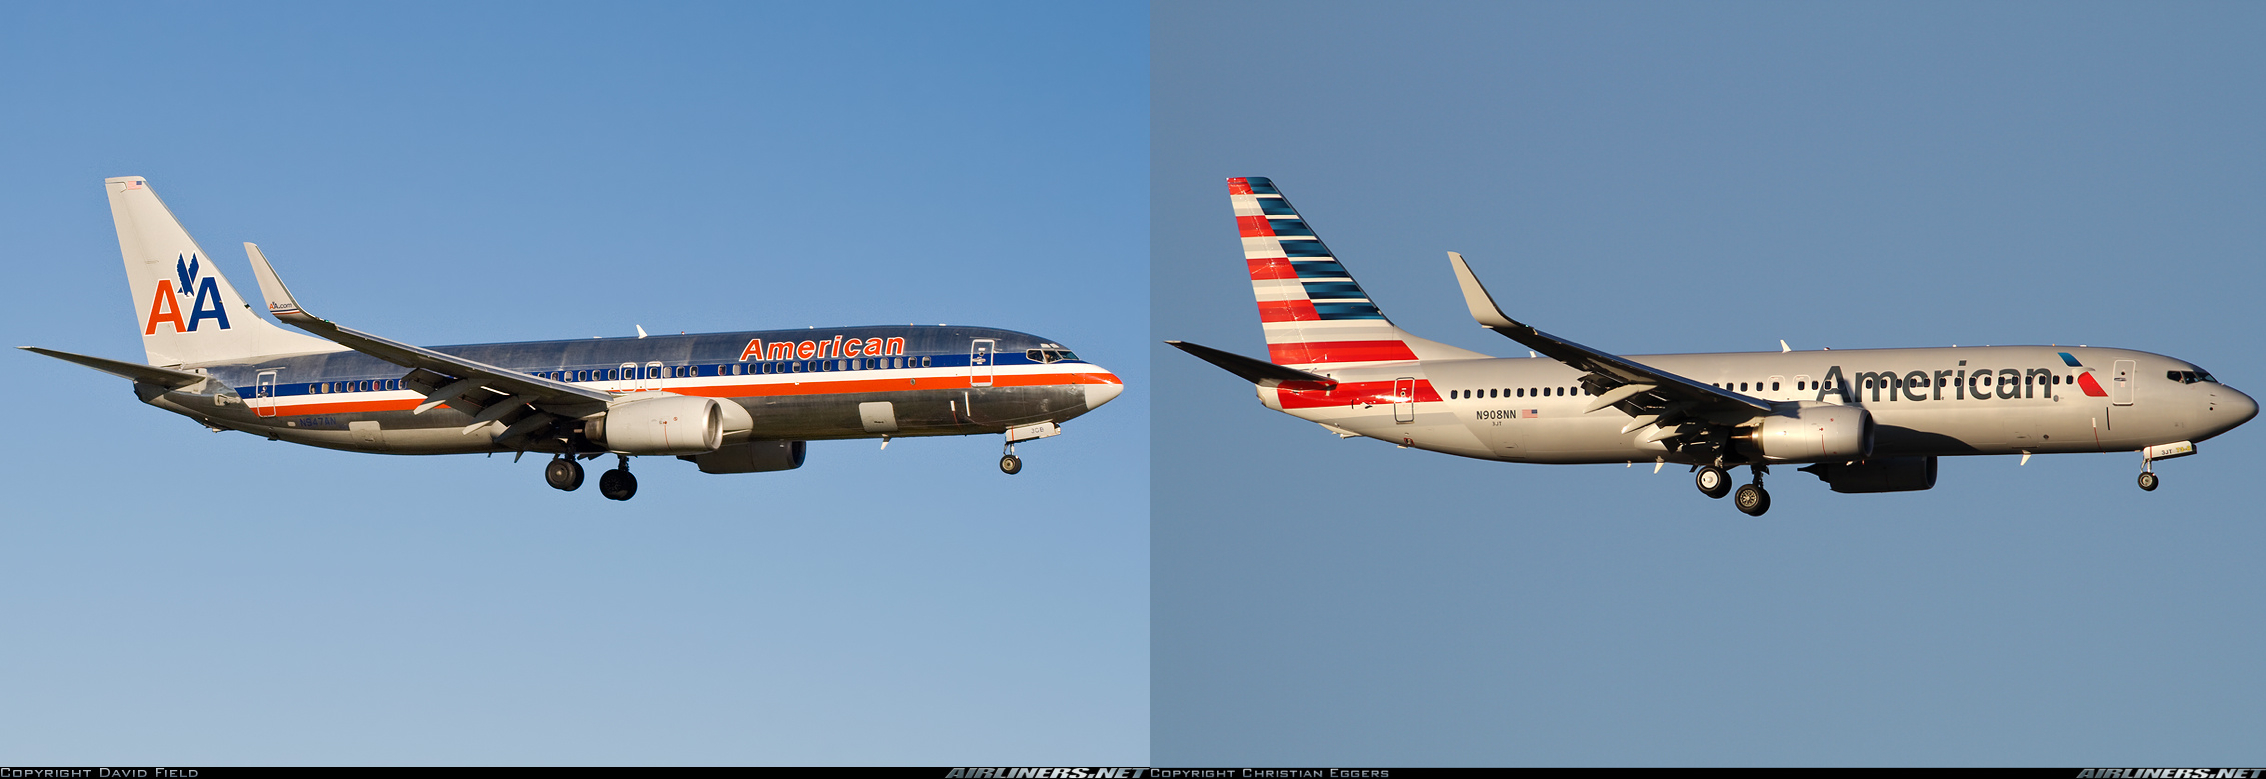 New Livery For American Airlines Airline World